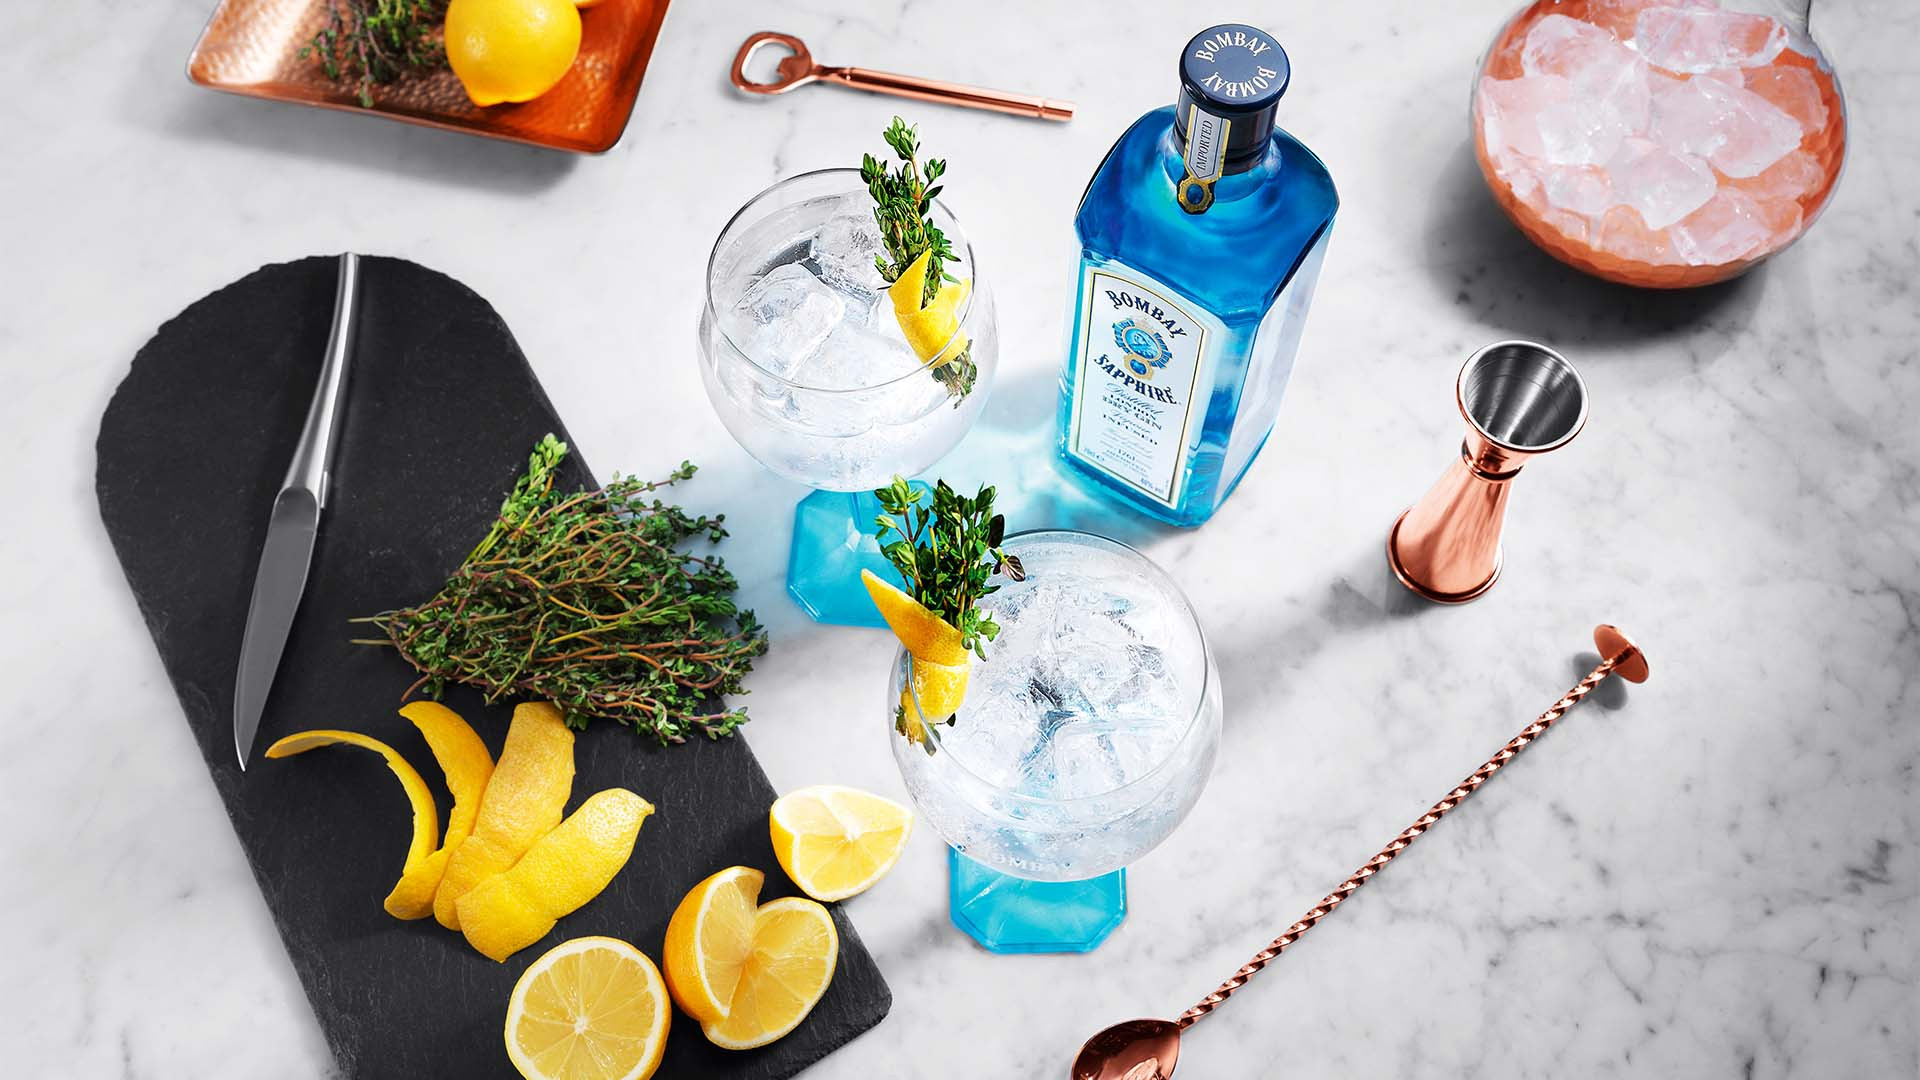 Gin and tonic with garnish, Bombay Sapphire